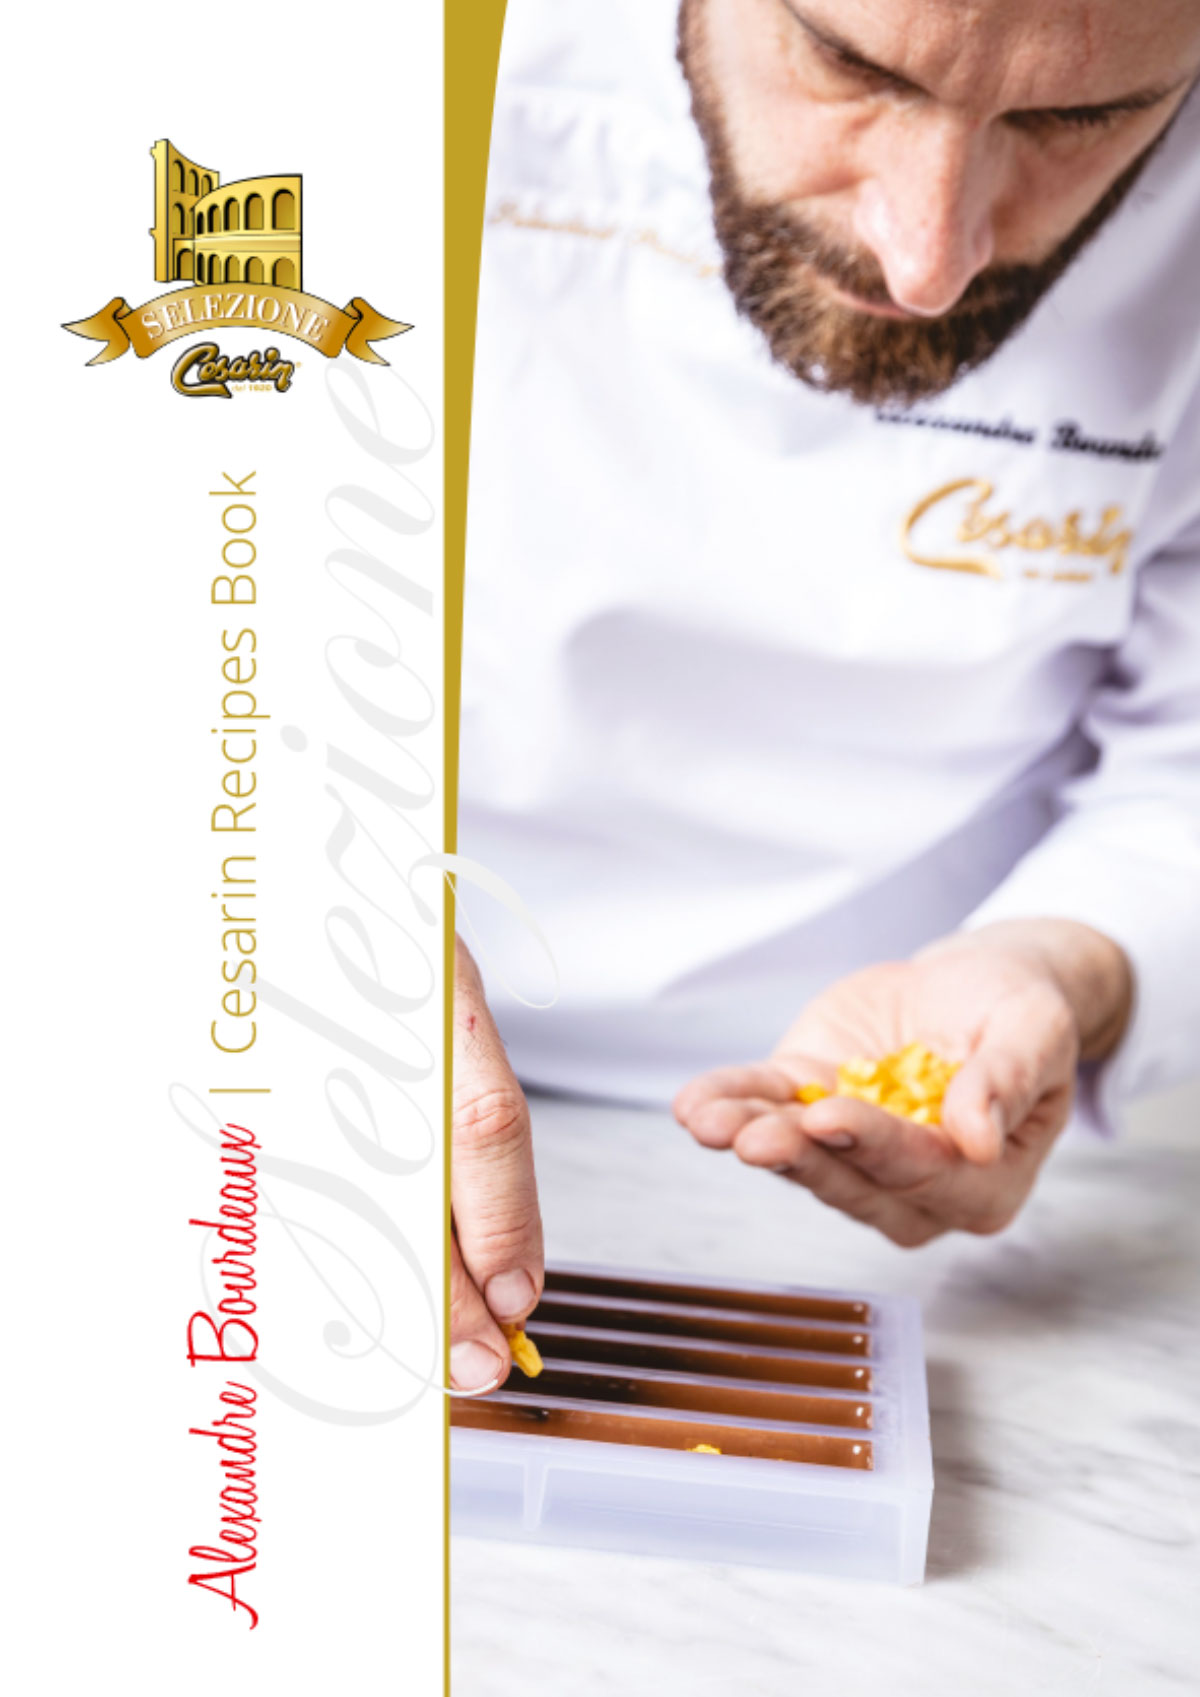 Recipe book Alexandre Bourdeaux